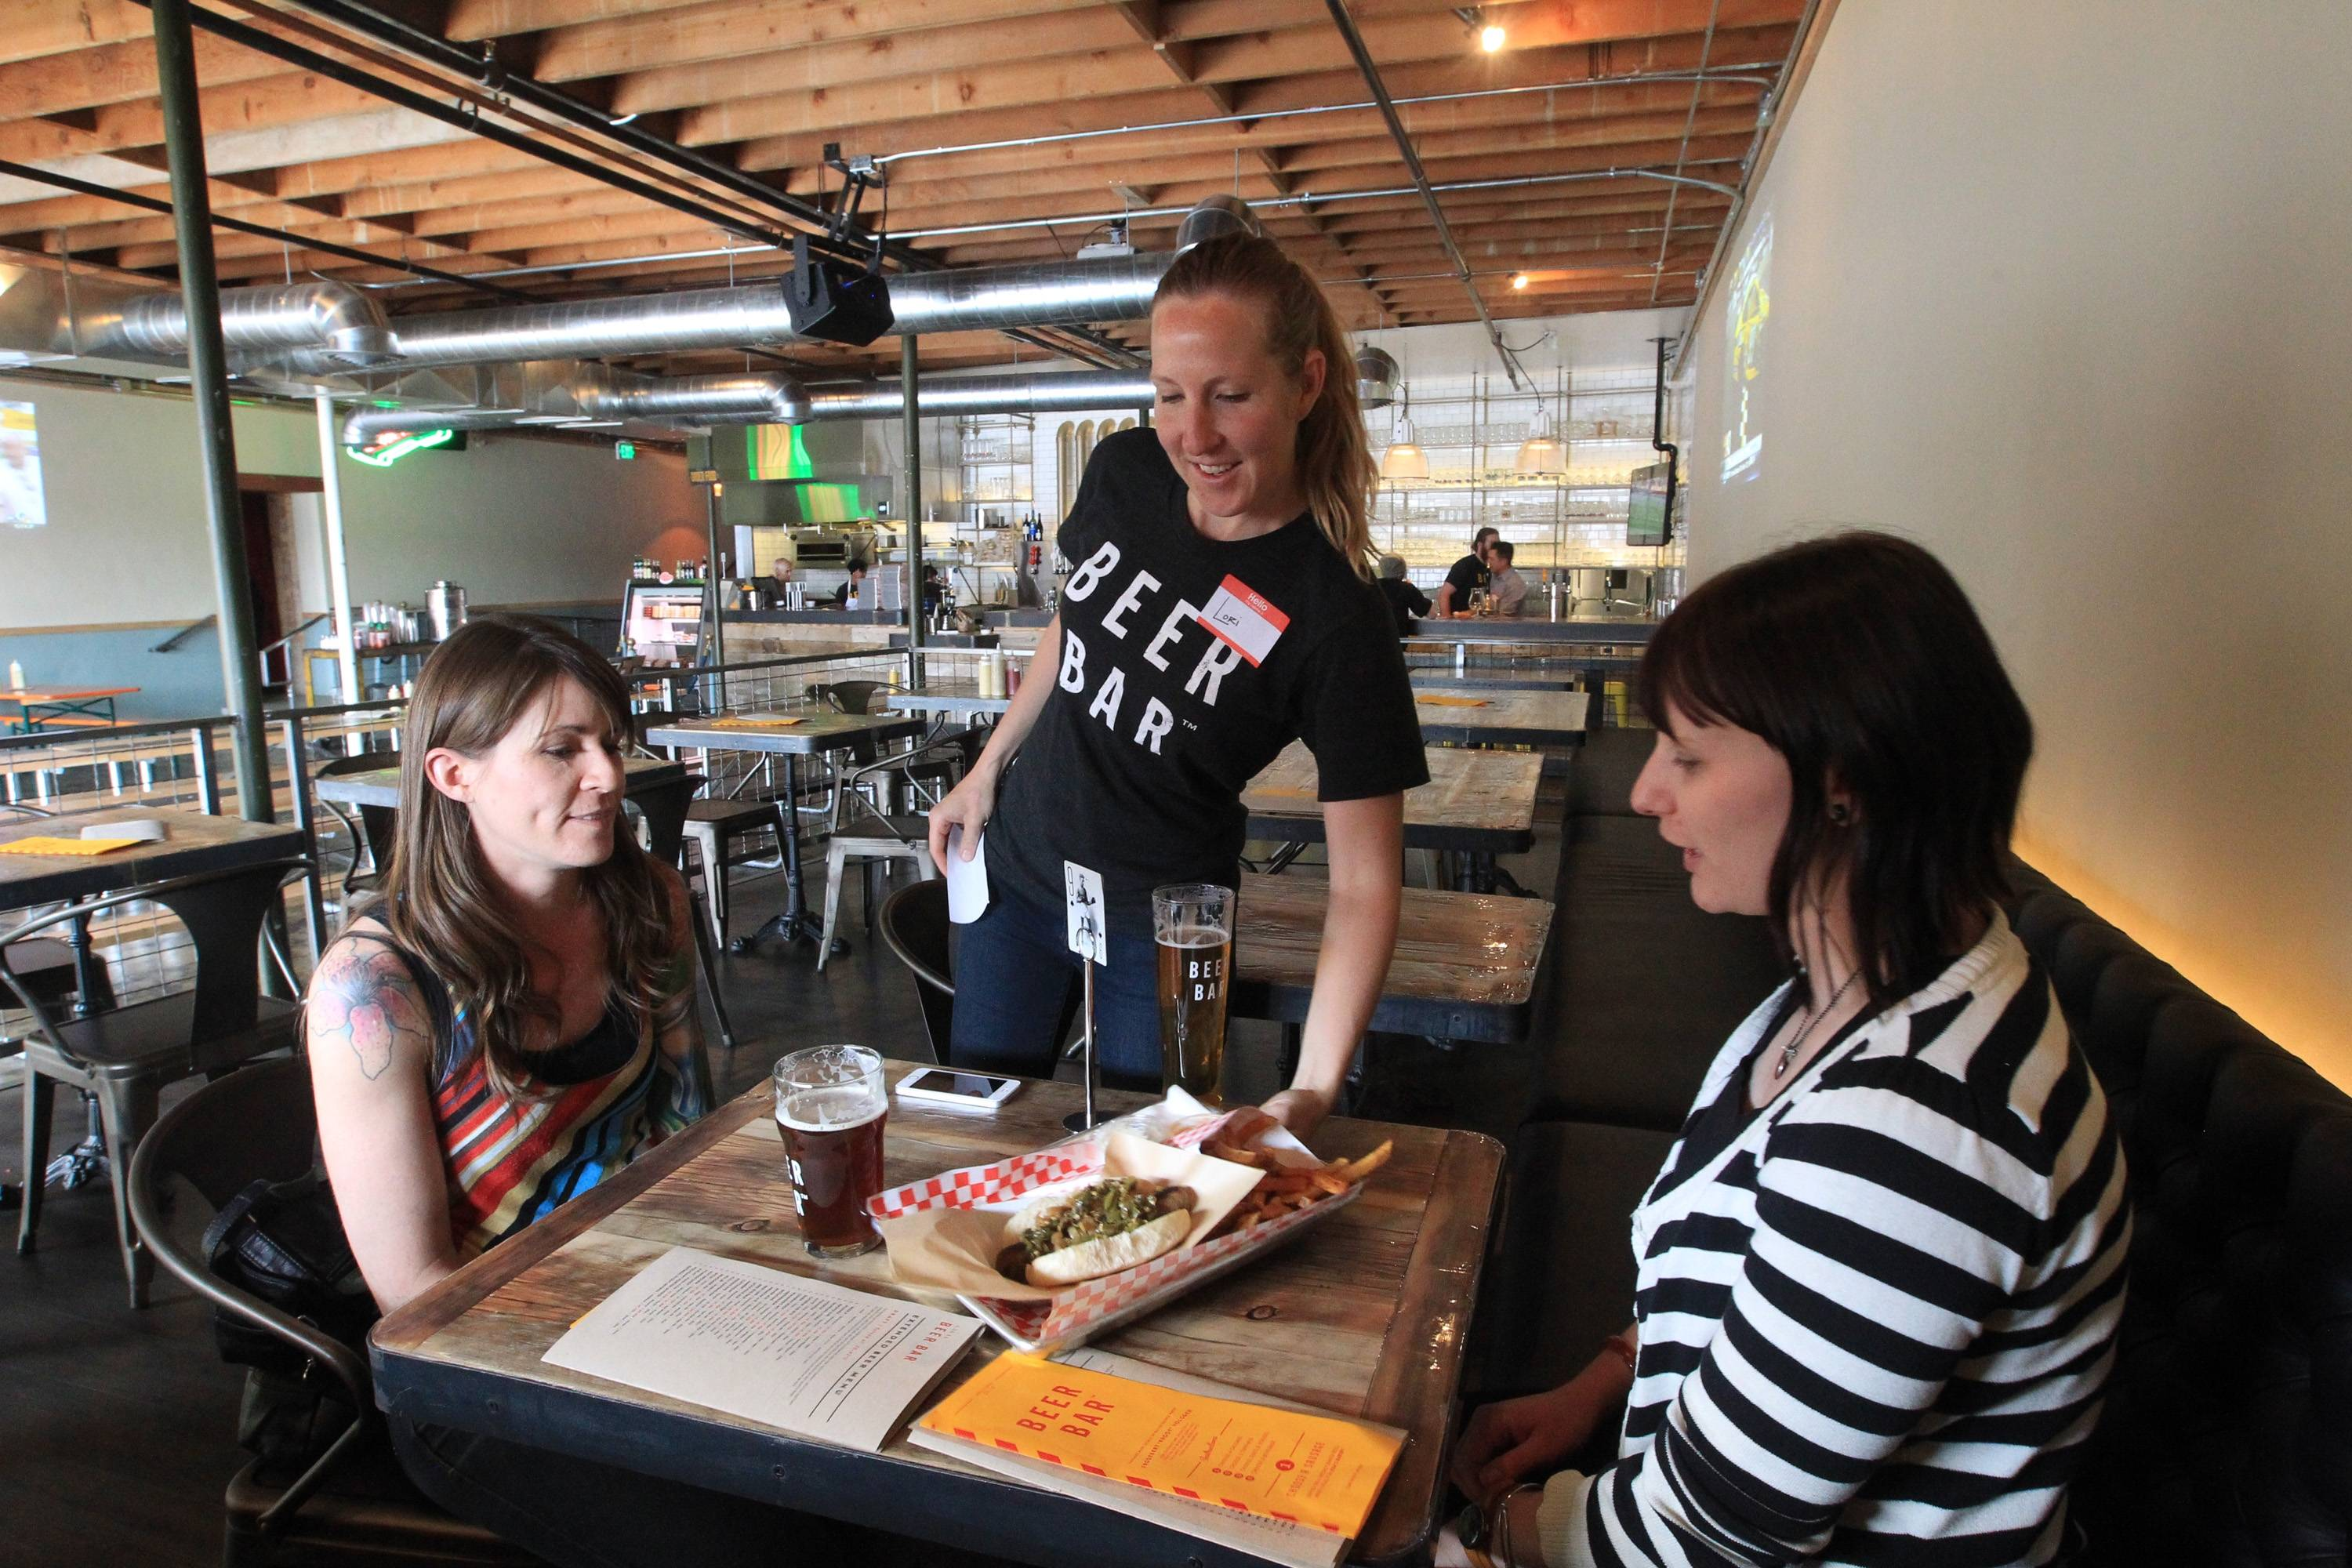 Lori Campbell, center, serves food to Andrea Latimer, right, and Nichole Peterson at Beer Bar in Salt Lake City.